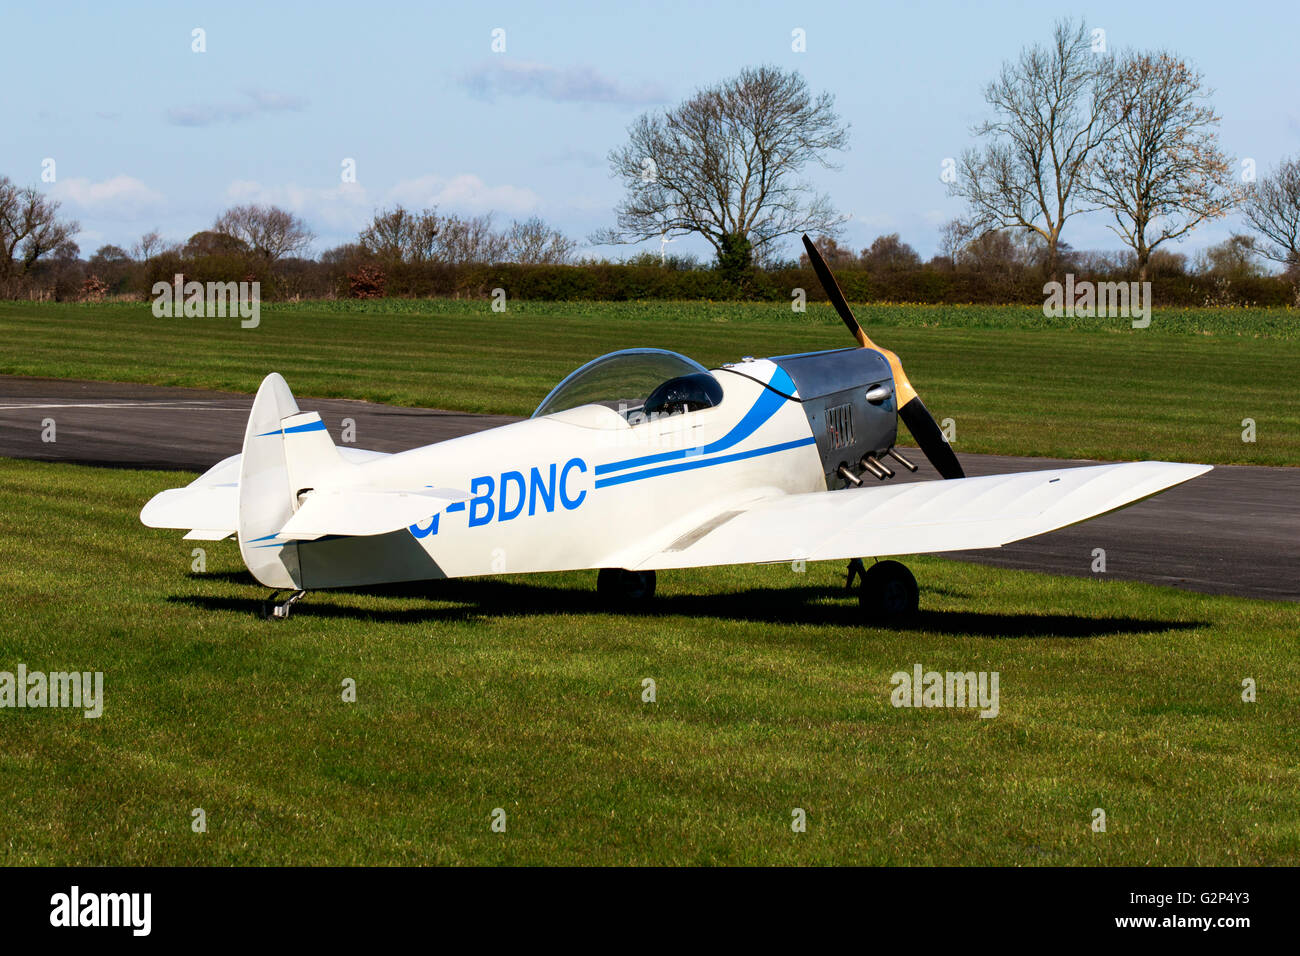 Taylor Monoplane G-BDNC parked at Breighton Airfield - Stock Image